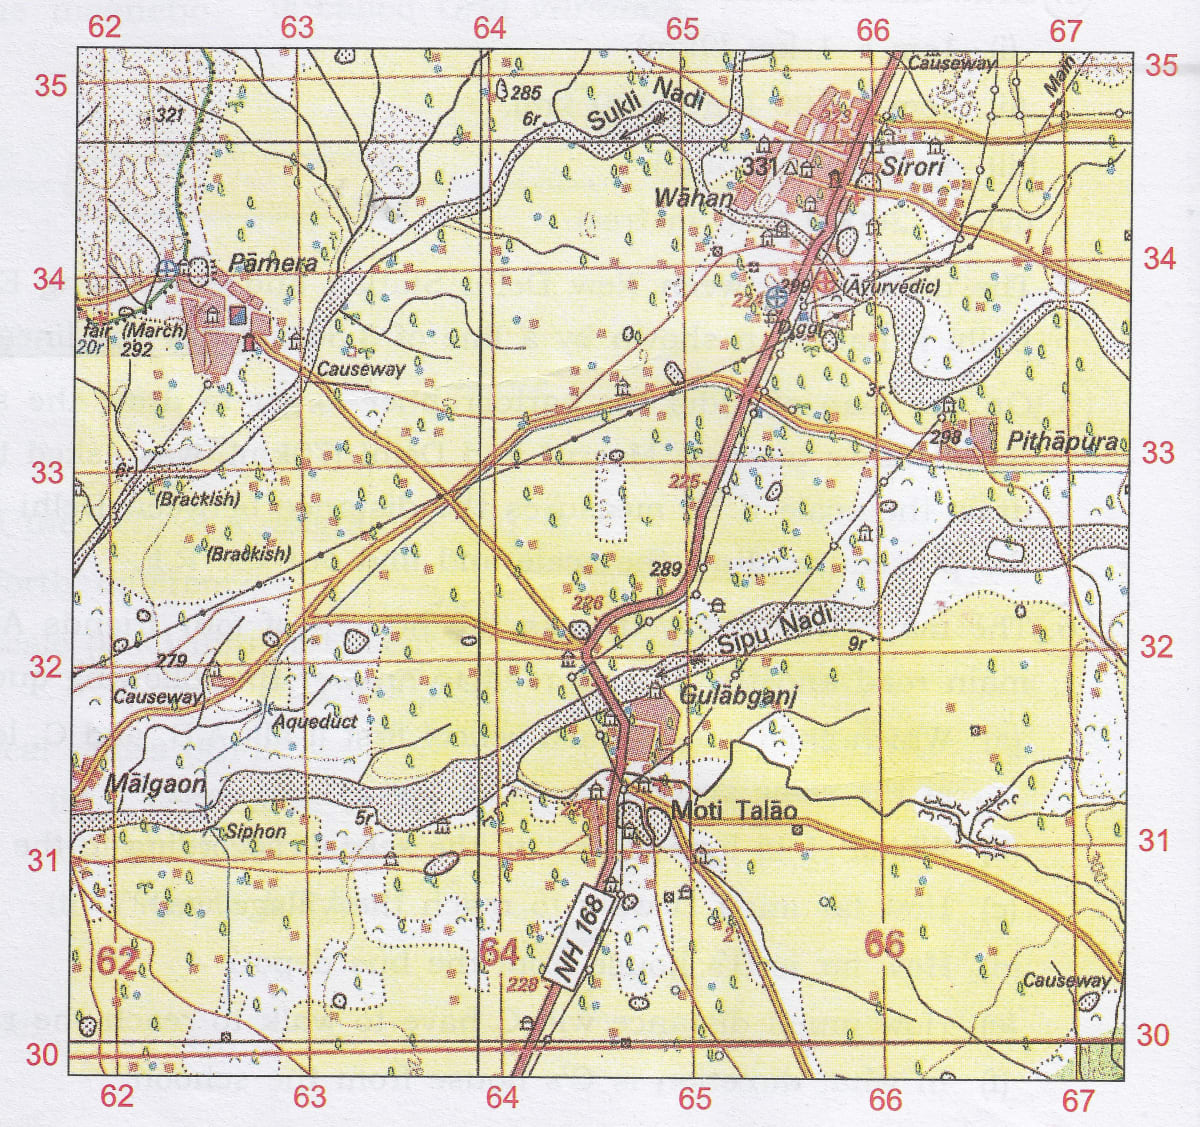 Study map extract and answer questions. Chapter 3 Scales and Direction, Total Geography ICSE Class 10